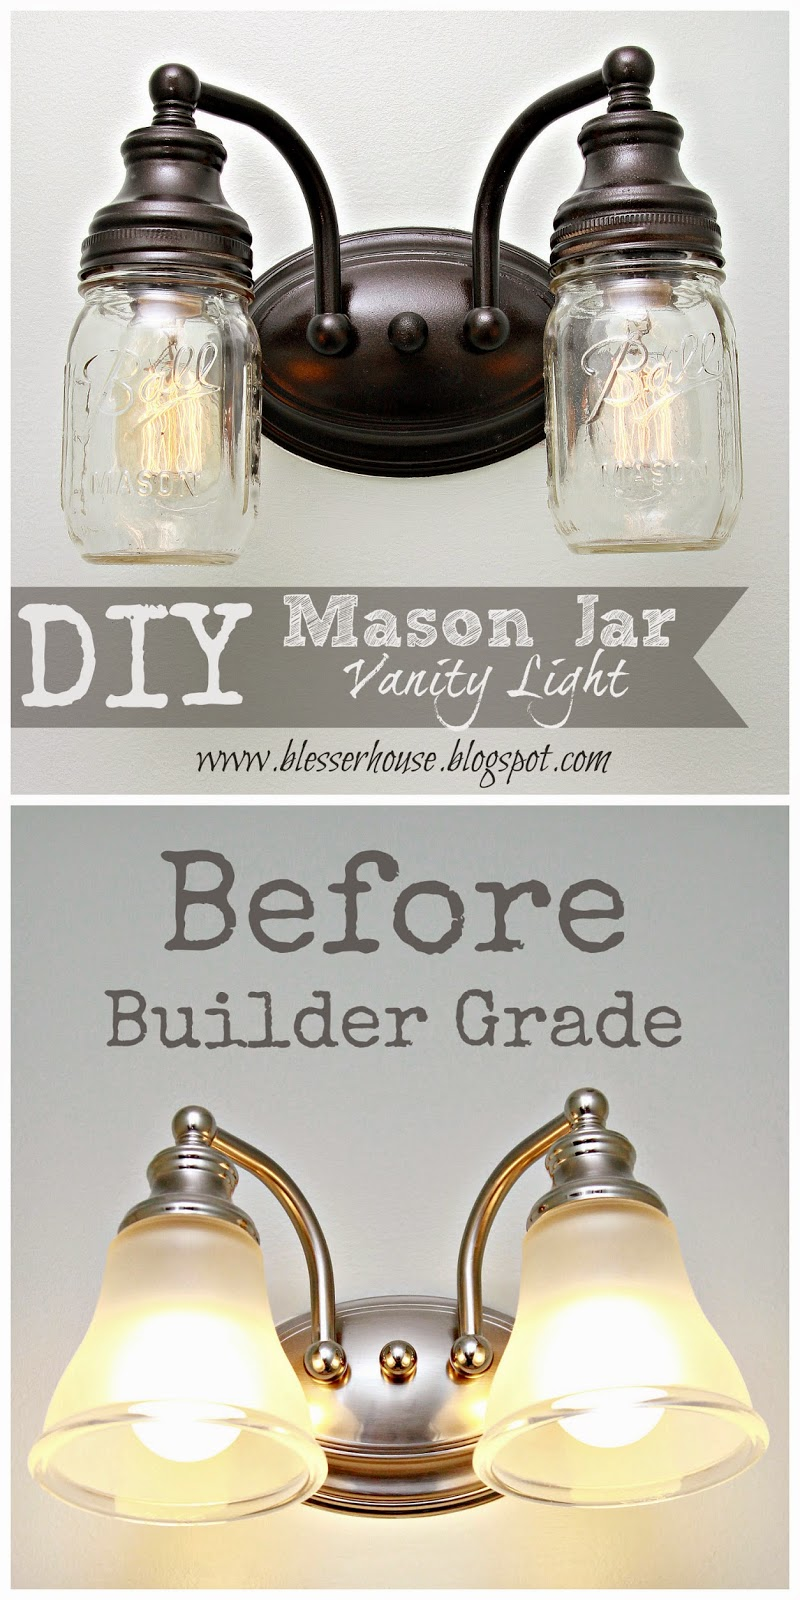 Diy mason jar vanity light blesser house i am bound and determined to change up our builder grade basic materials in our home to make it more us and let it have some personality arubaitofo Gallery